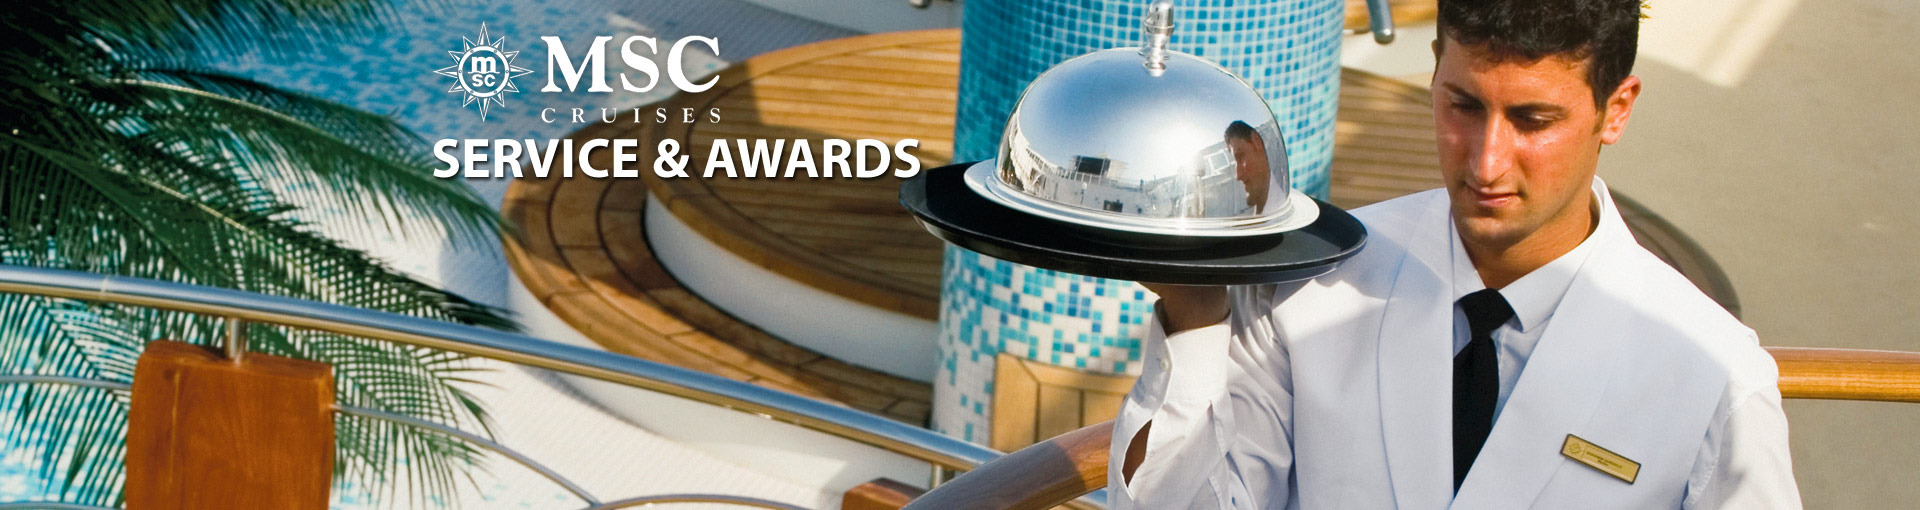 MSC Cruises Services & Awards